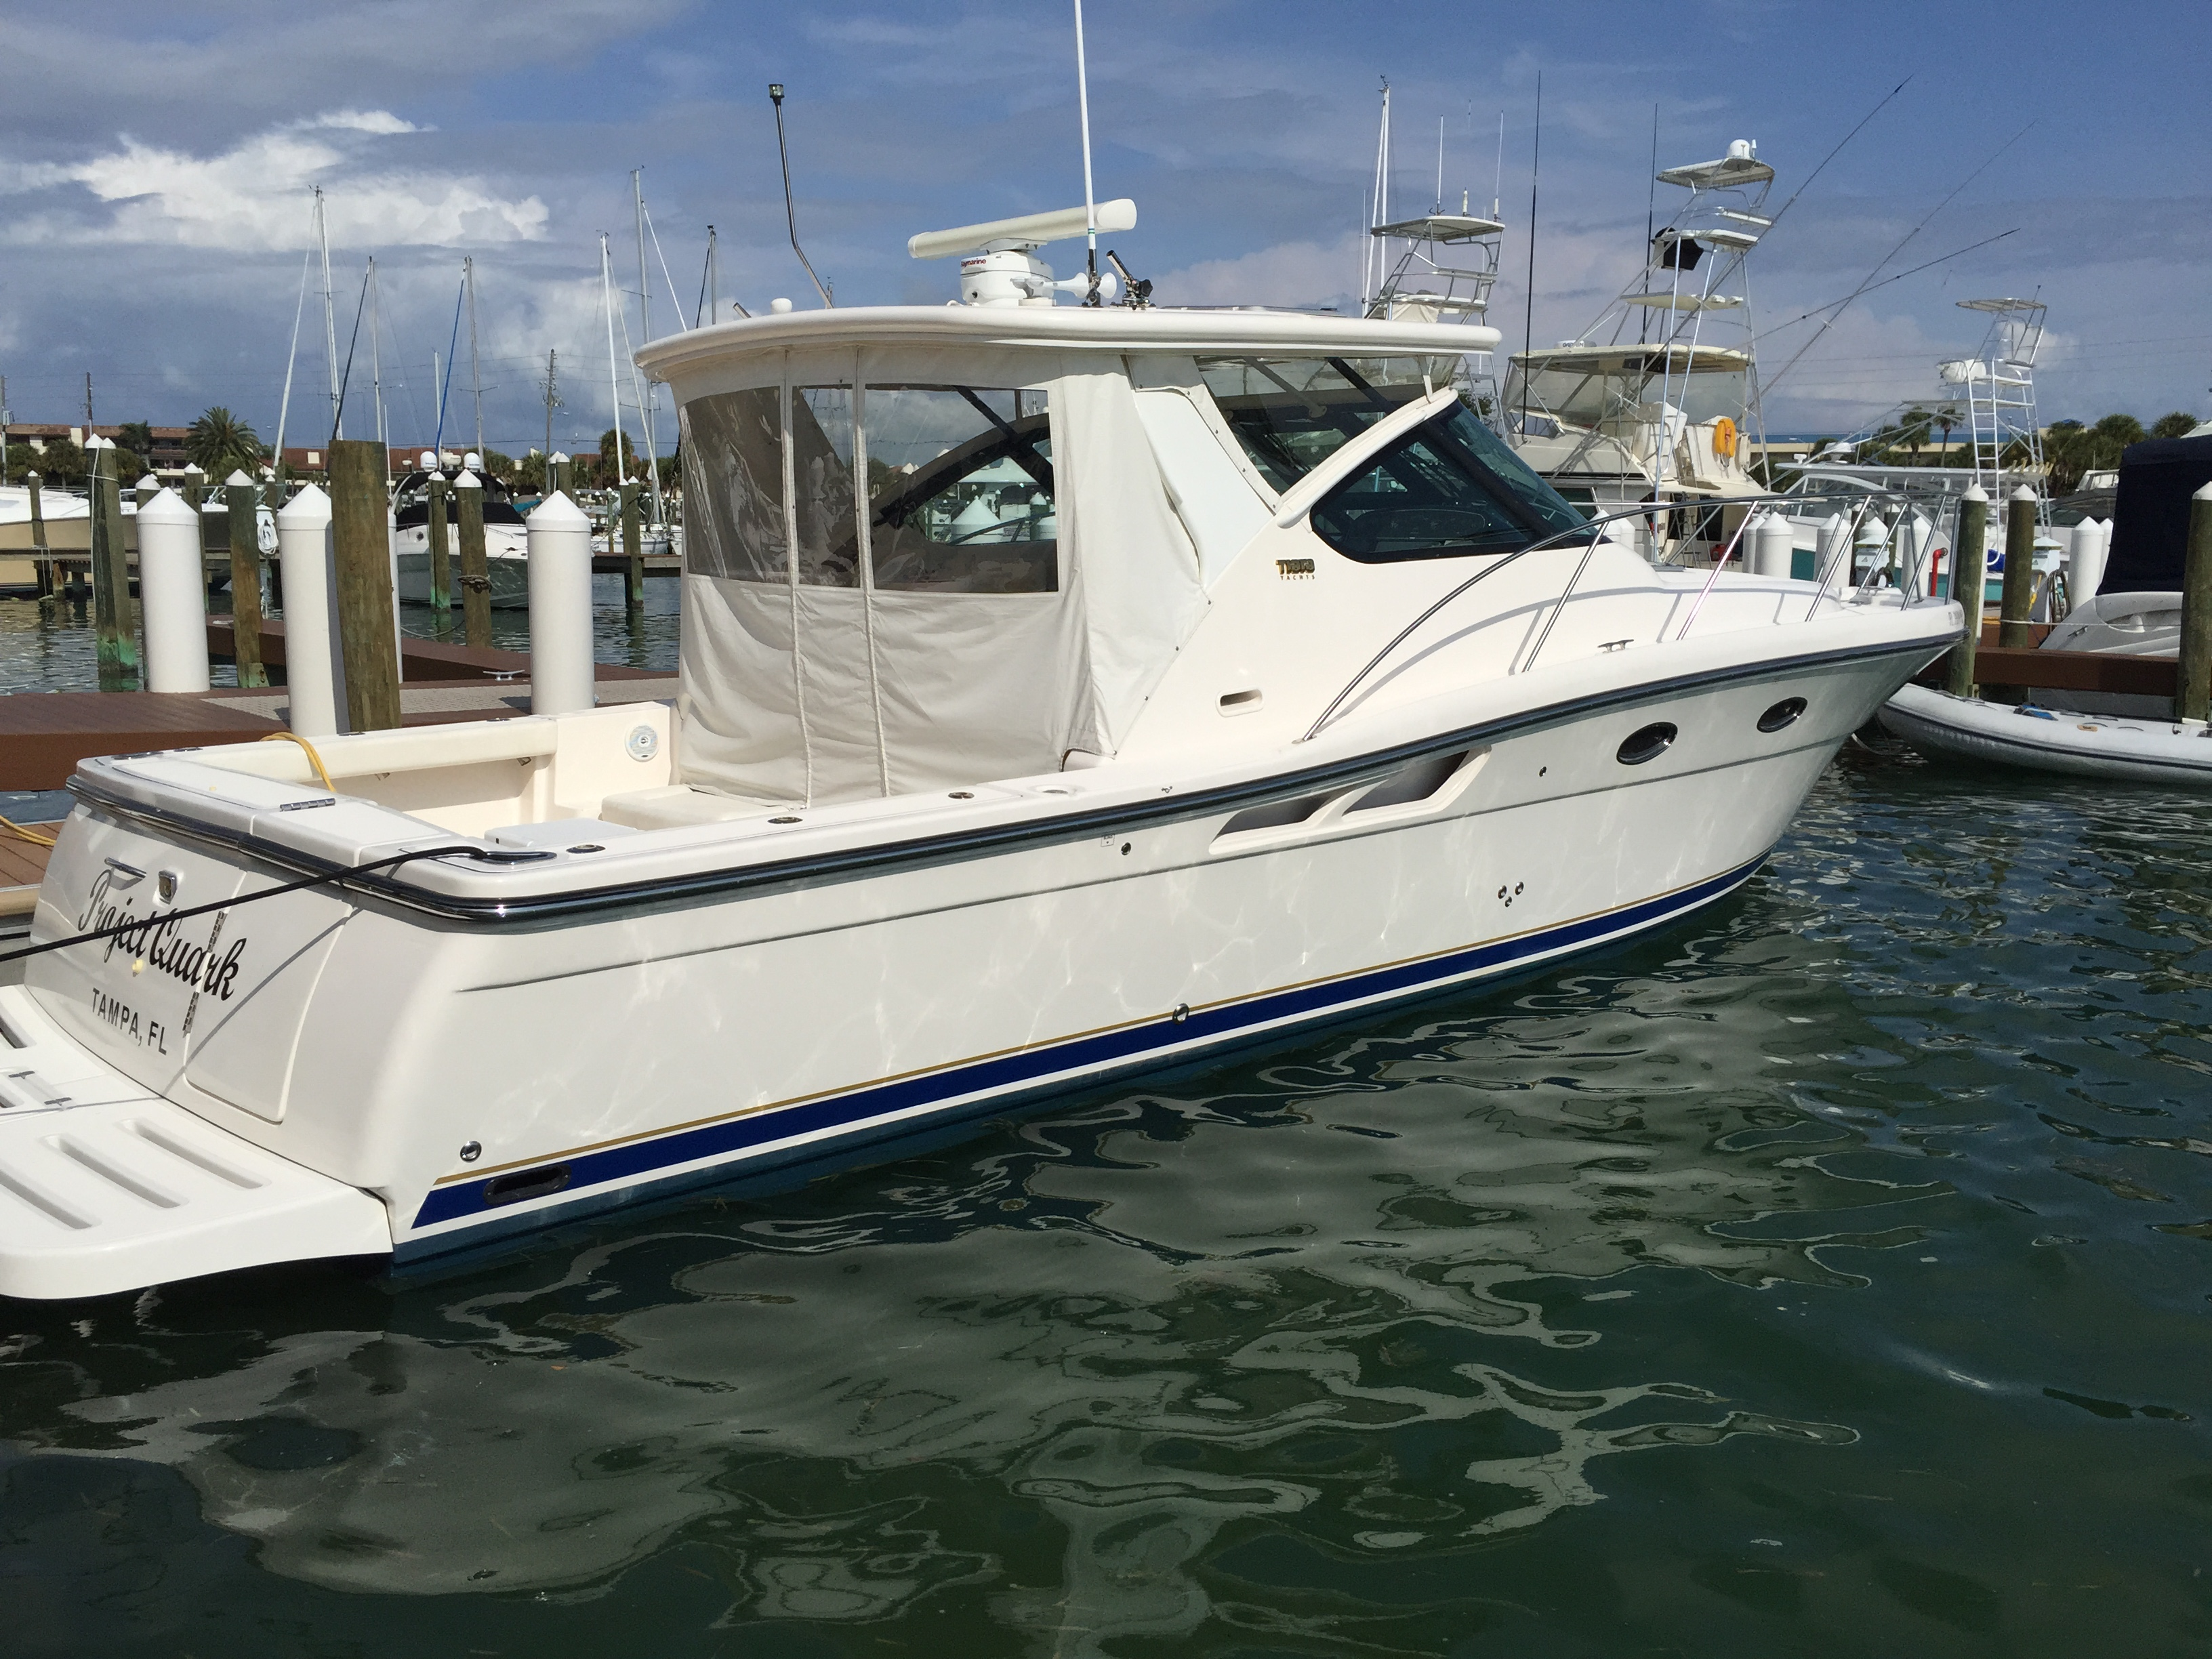 Boat we provide boat maintenance for in Tampa, FL